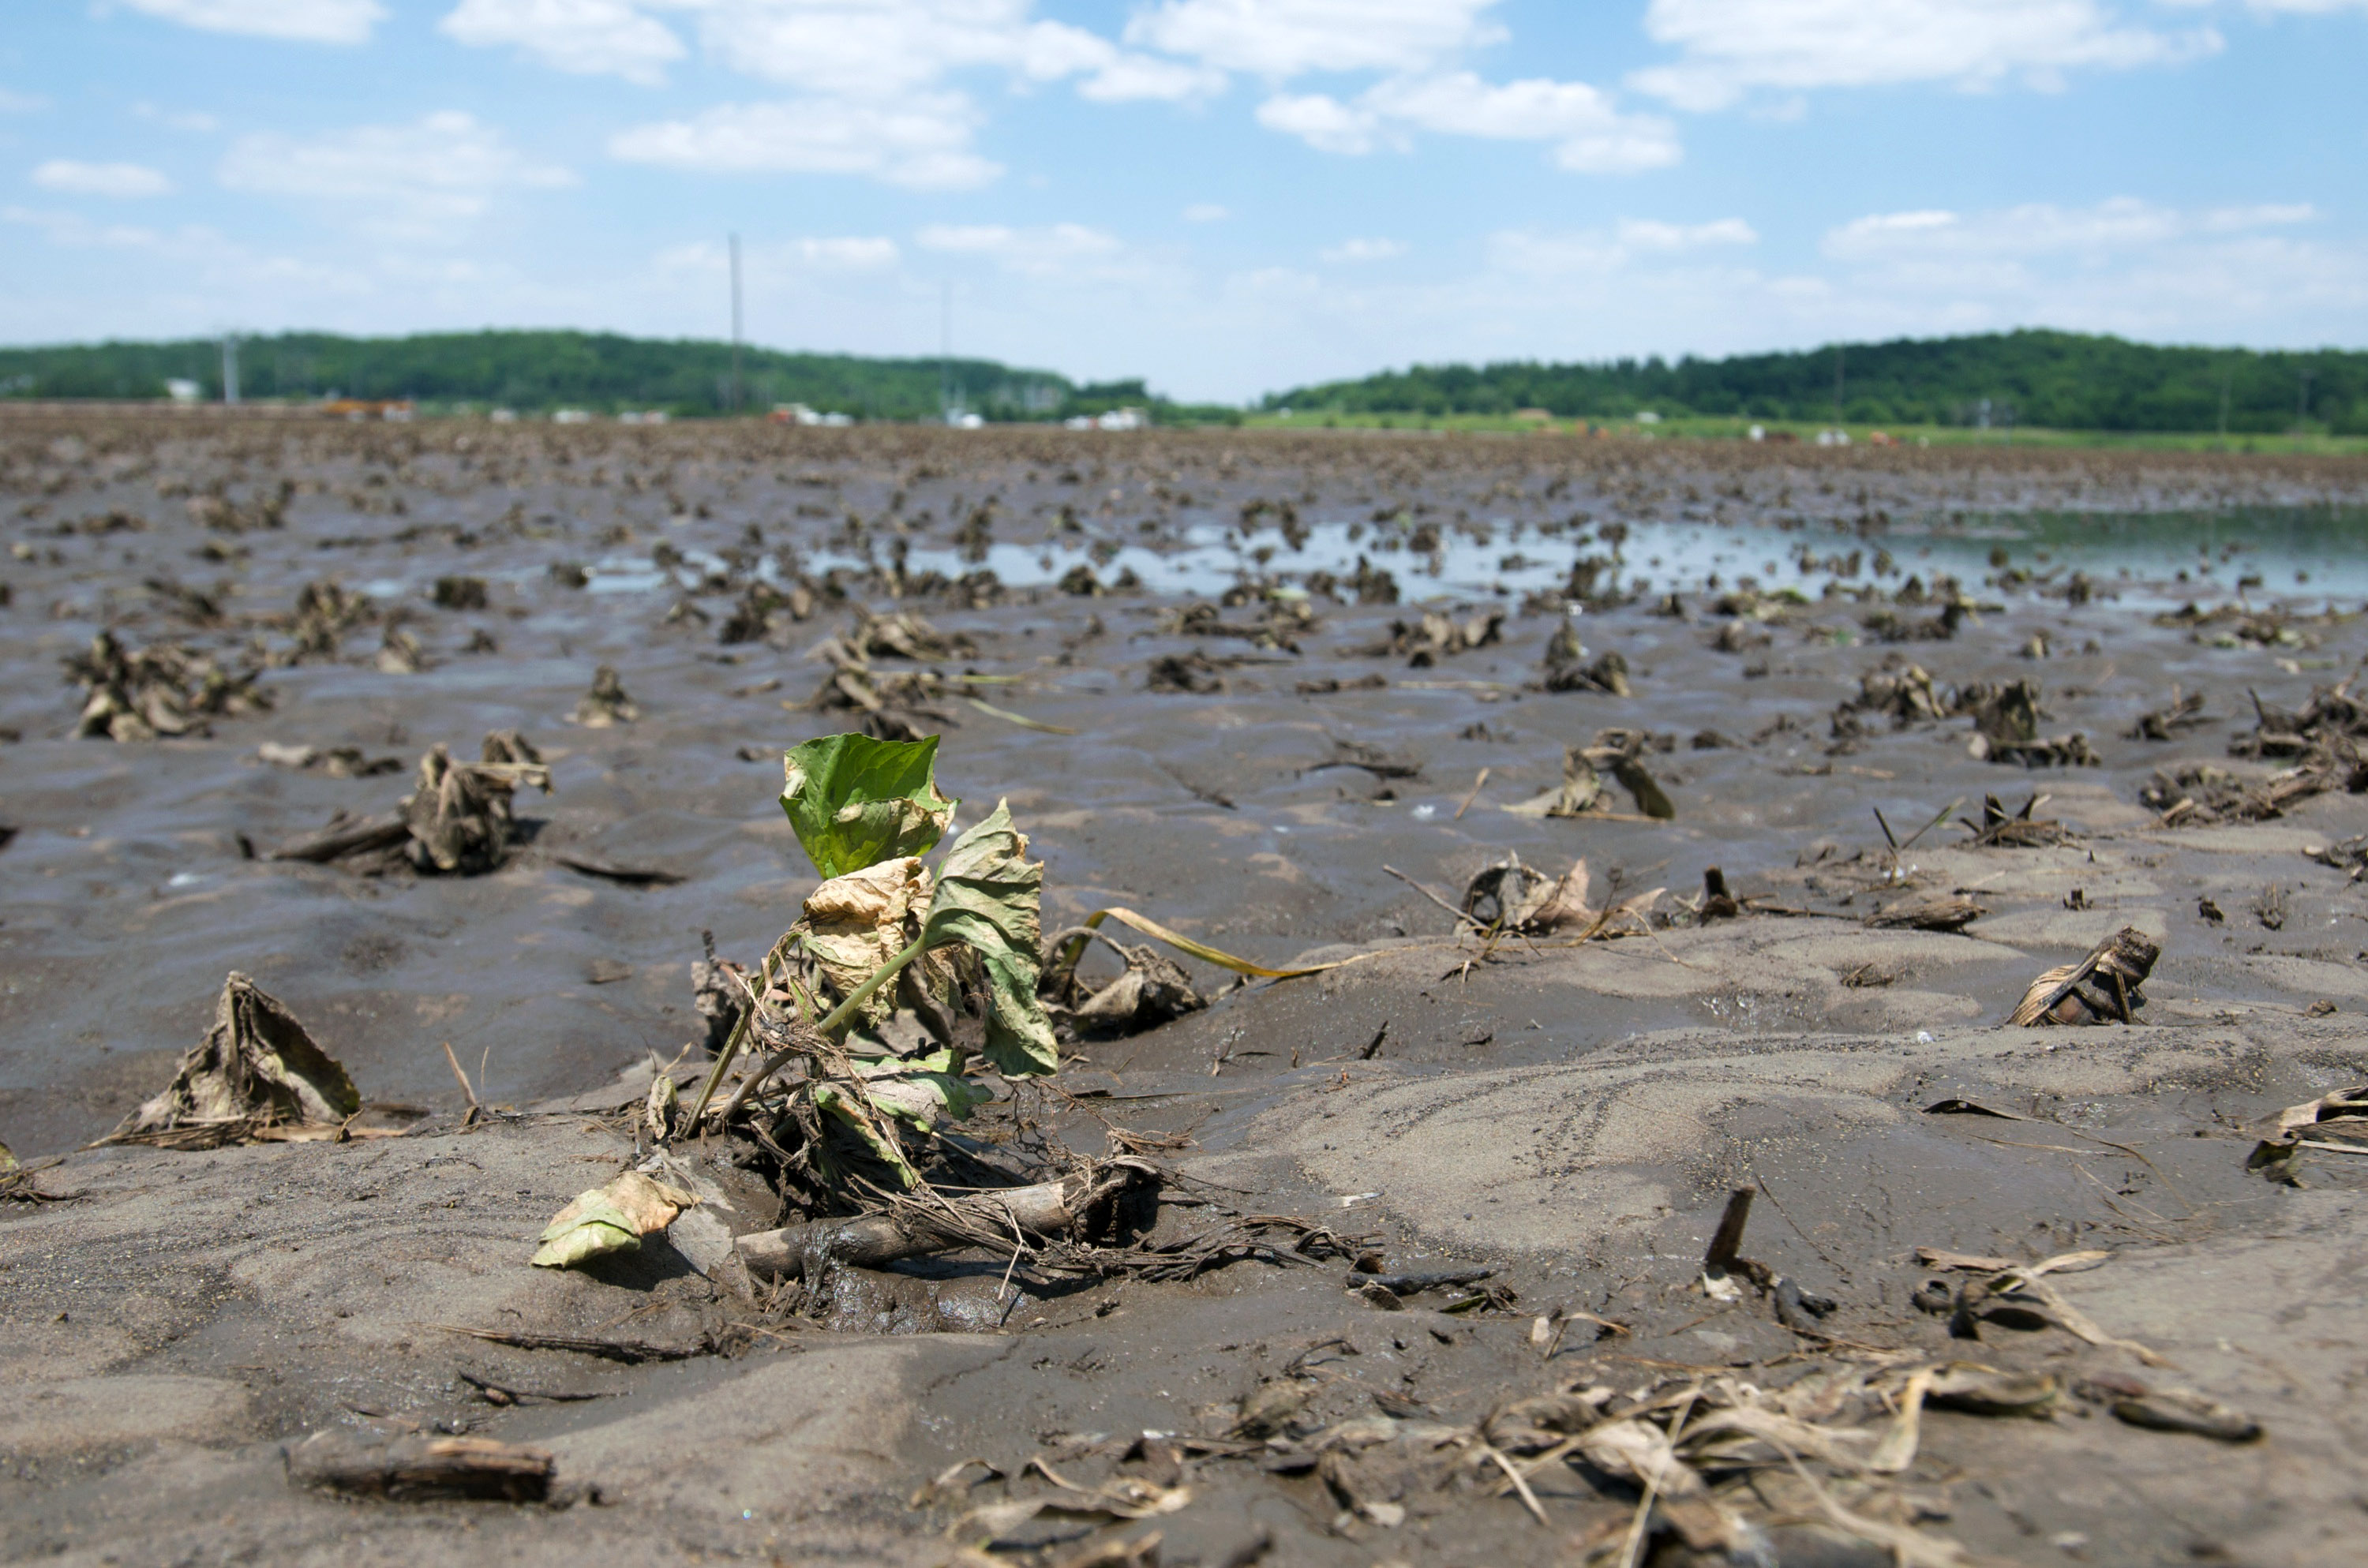 Food Prices Expected To Rise As Midwest Flooding Damages Corn Crops